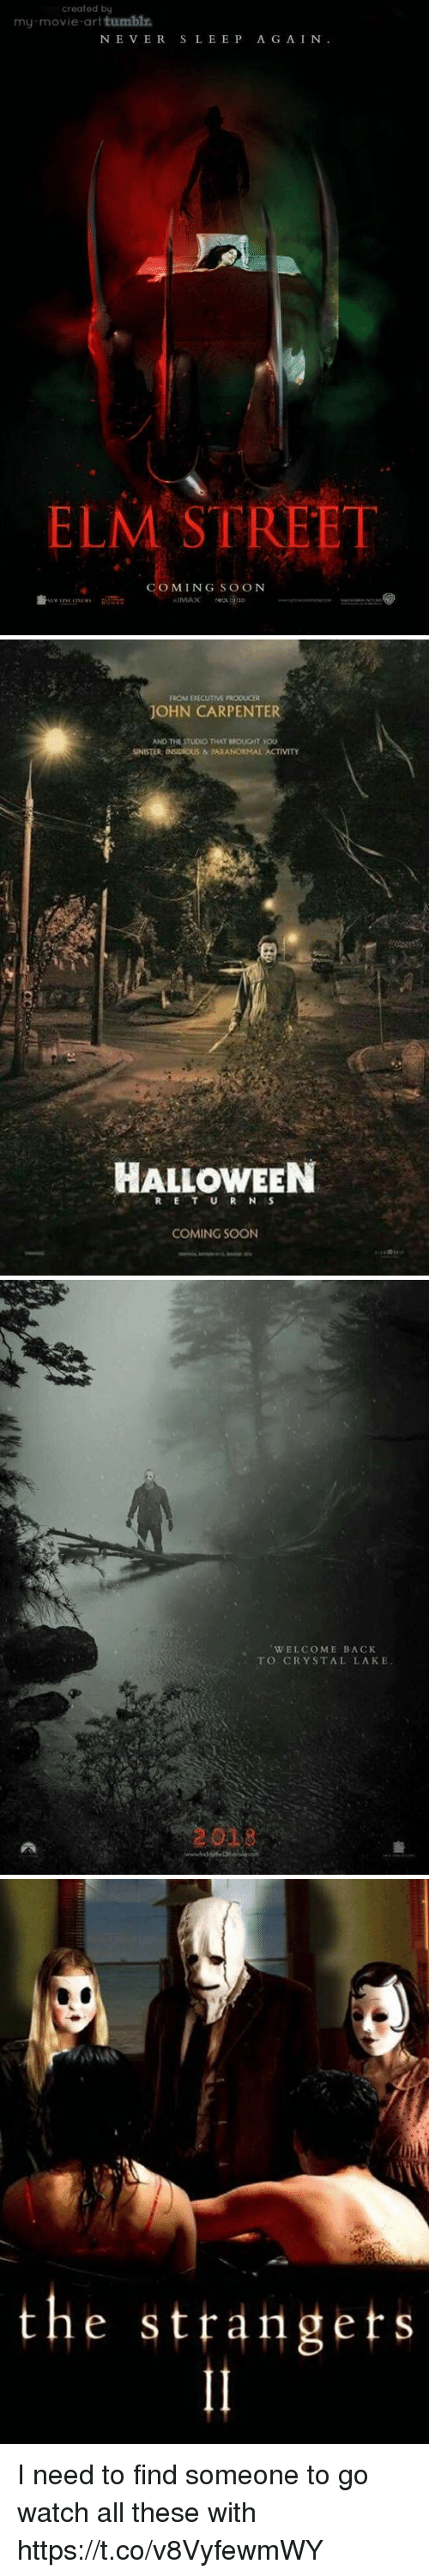 Halloween, Soon..., and Tumblr: created by  my-movie-art tumblr  NE VERSLEEP A G AIN.  ELM STREET  COMING SO oN   ROM EXECUTIVE PRODUCER  JOHN CARPENTER  AND THE STUDIO THAT BROUGHT YOU  SINISTER INSIDIOUS & TARANORMAL ACTIVITY  HALLOWEEN  COMING SOON   WELCOME BACK  TO CRYSTAL LAKE  2029   the strangets  1 I need to find someone to go watch all these with https://t.co/v8VyfewmWY